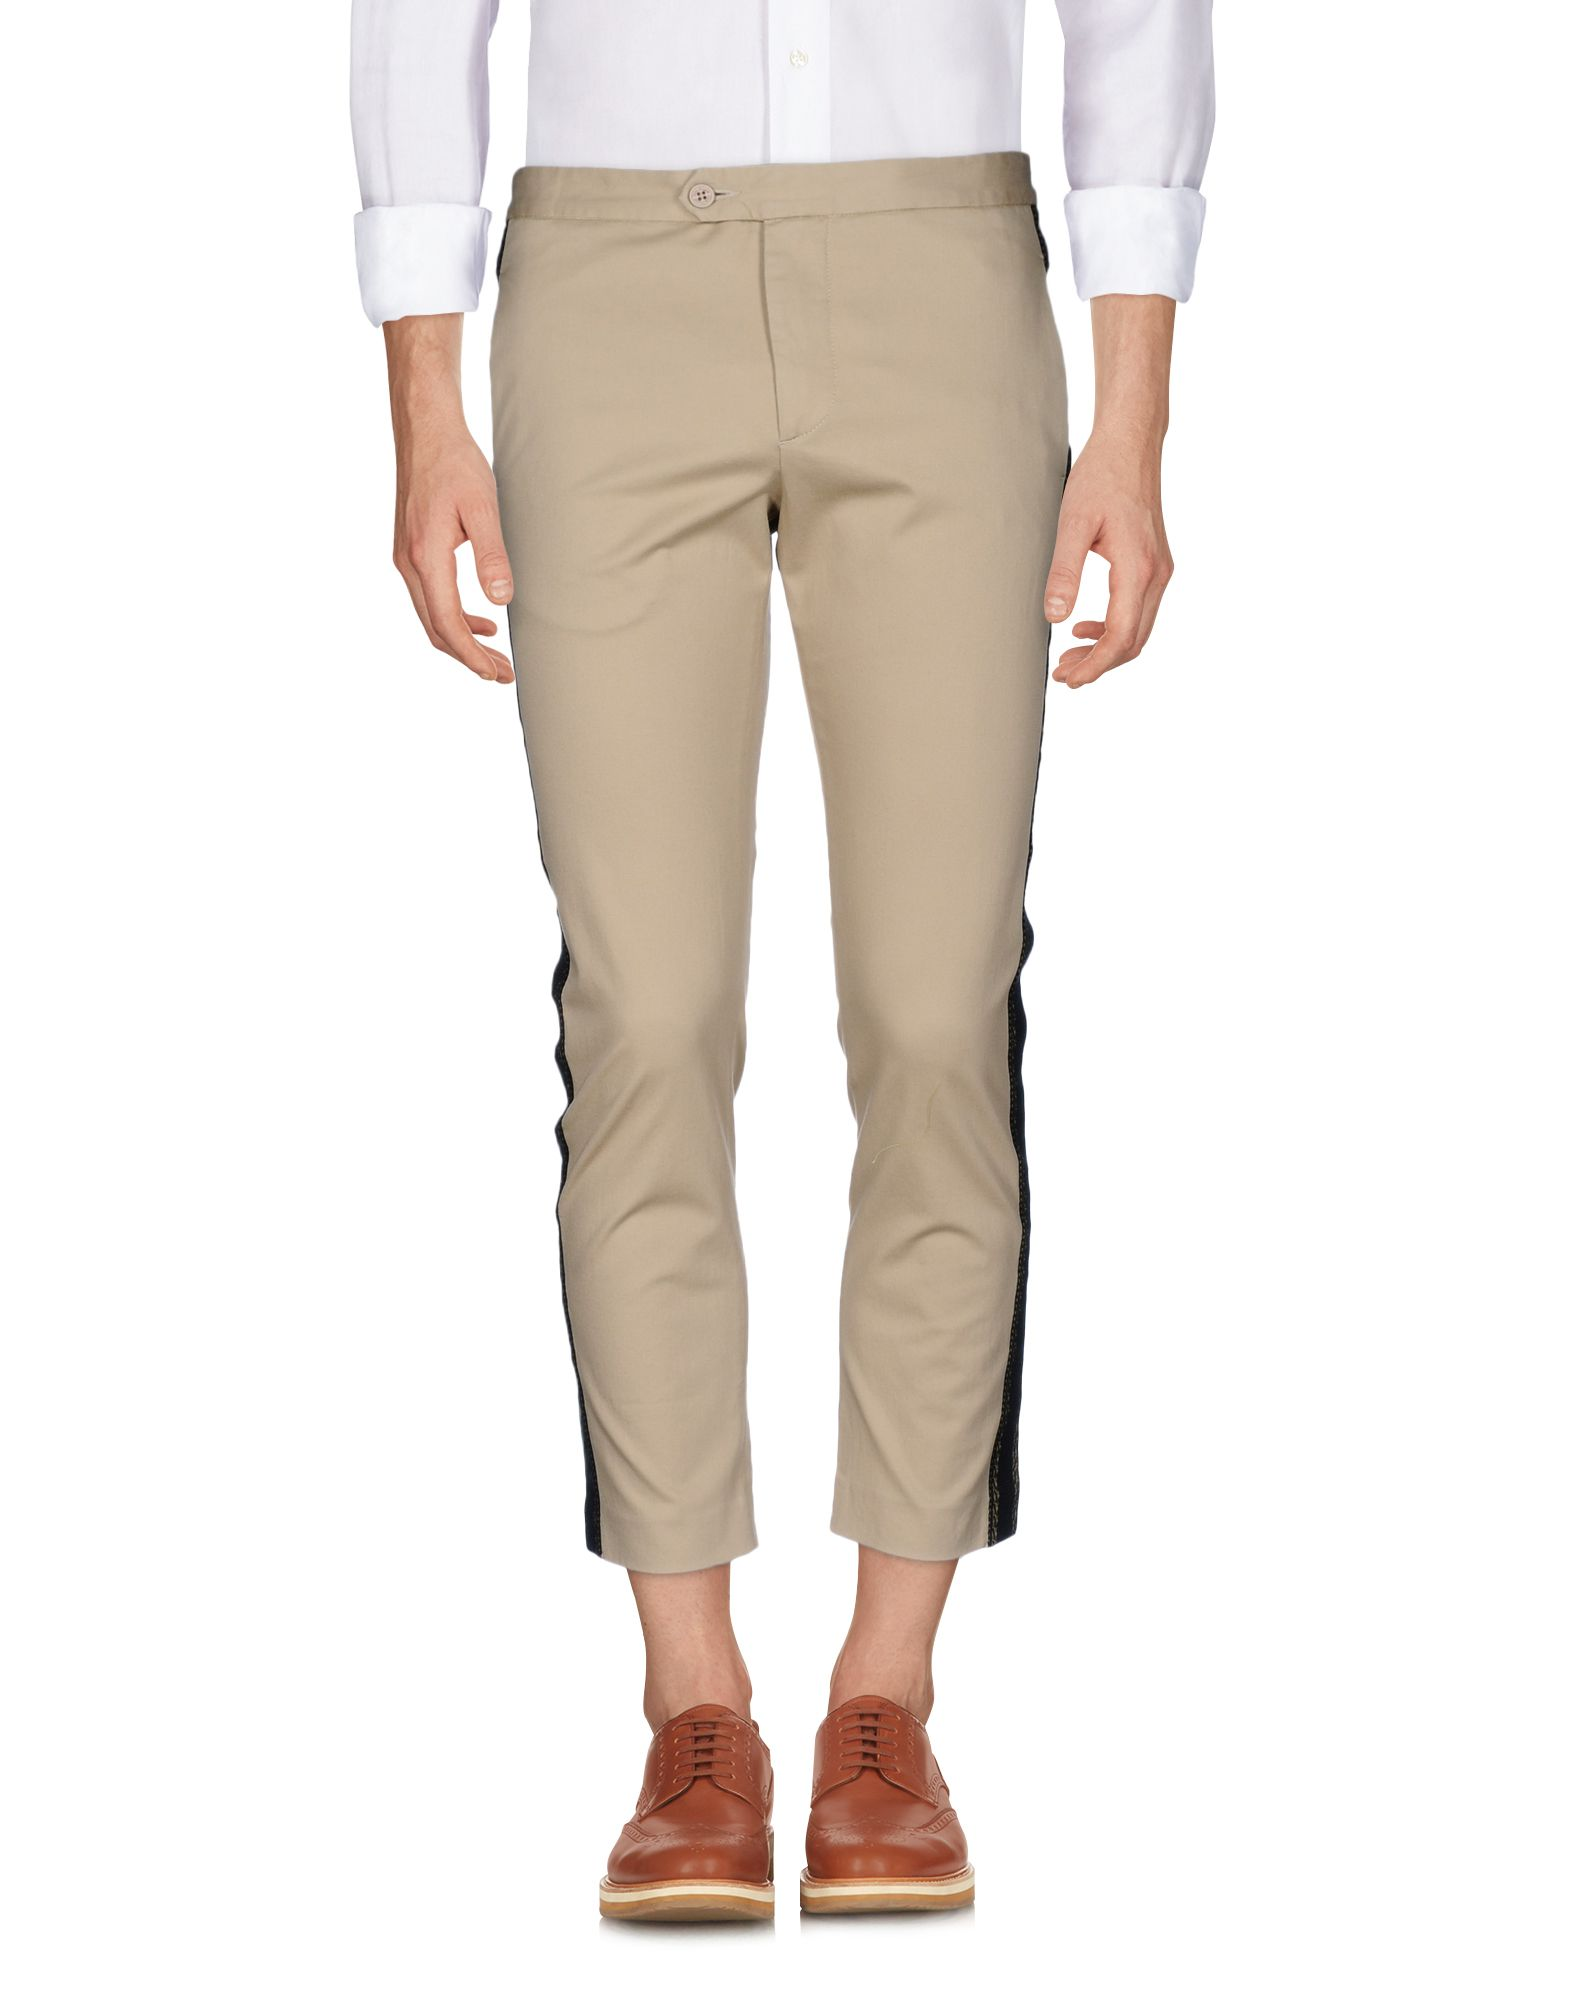 SOLD OUT         Chinos Palm Angels Uomo - Acquista online su